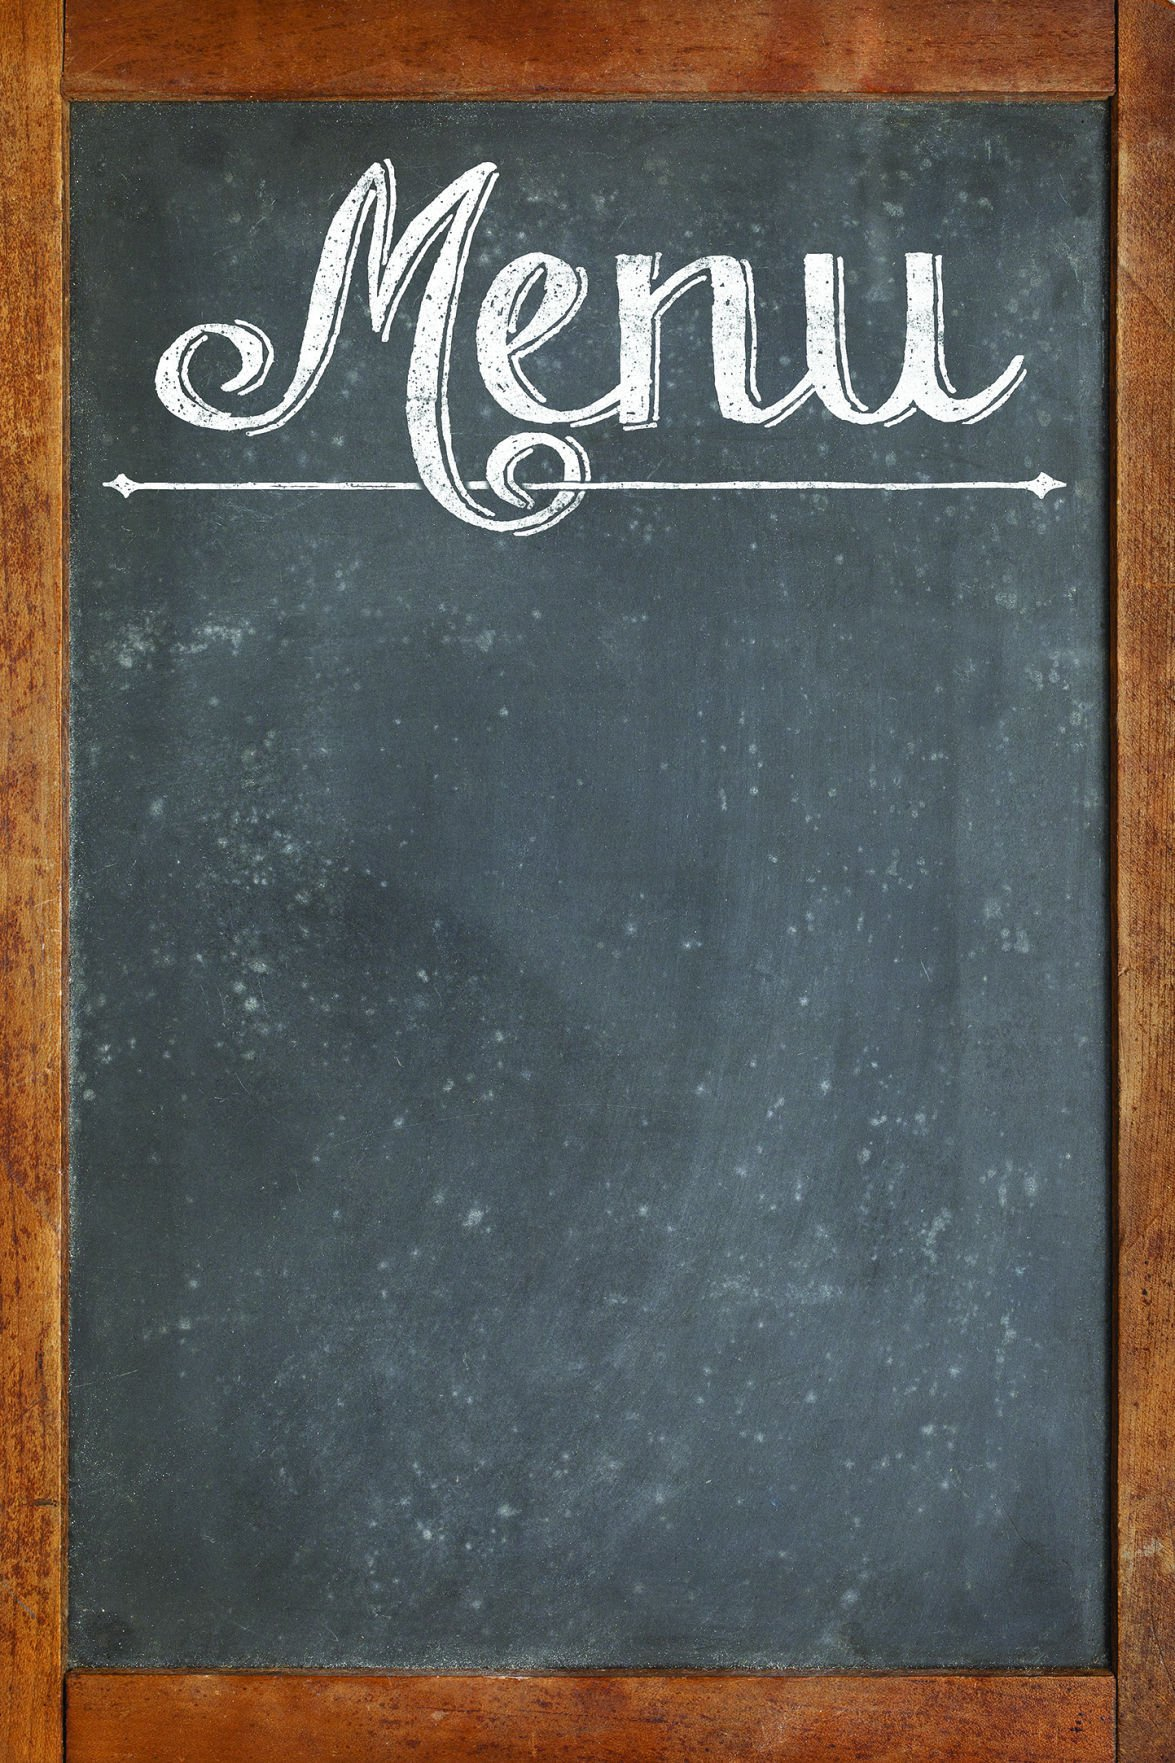 Senior lunch menus weekly activities listed Local